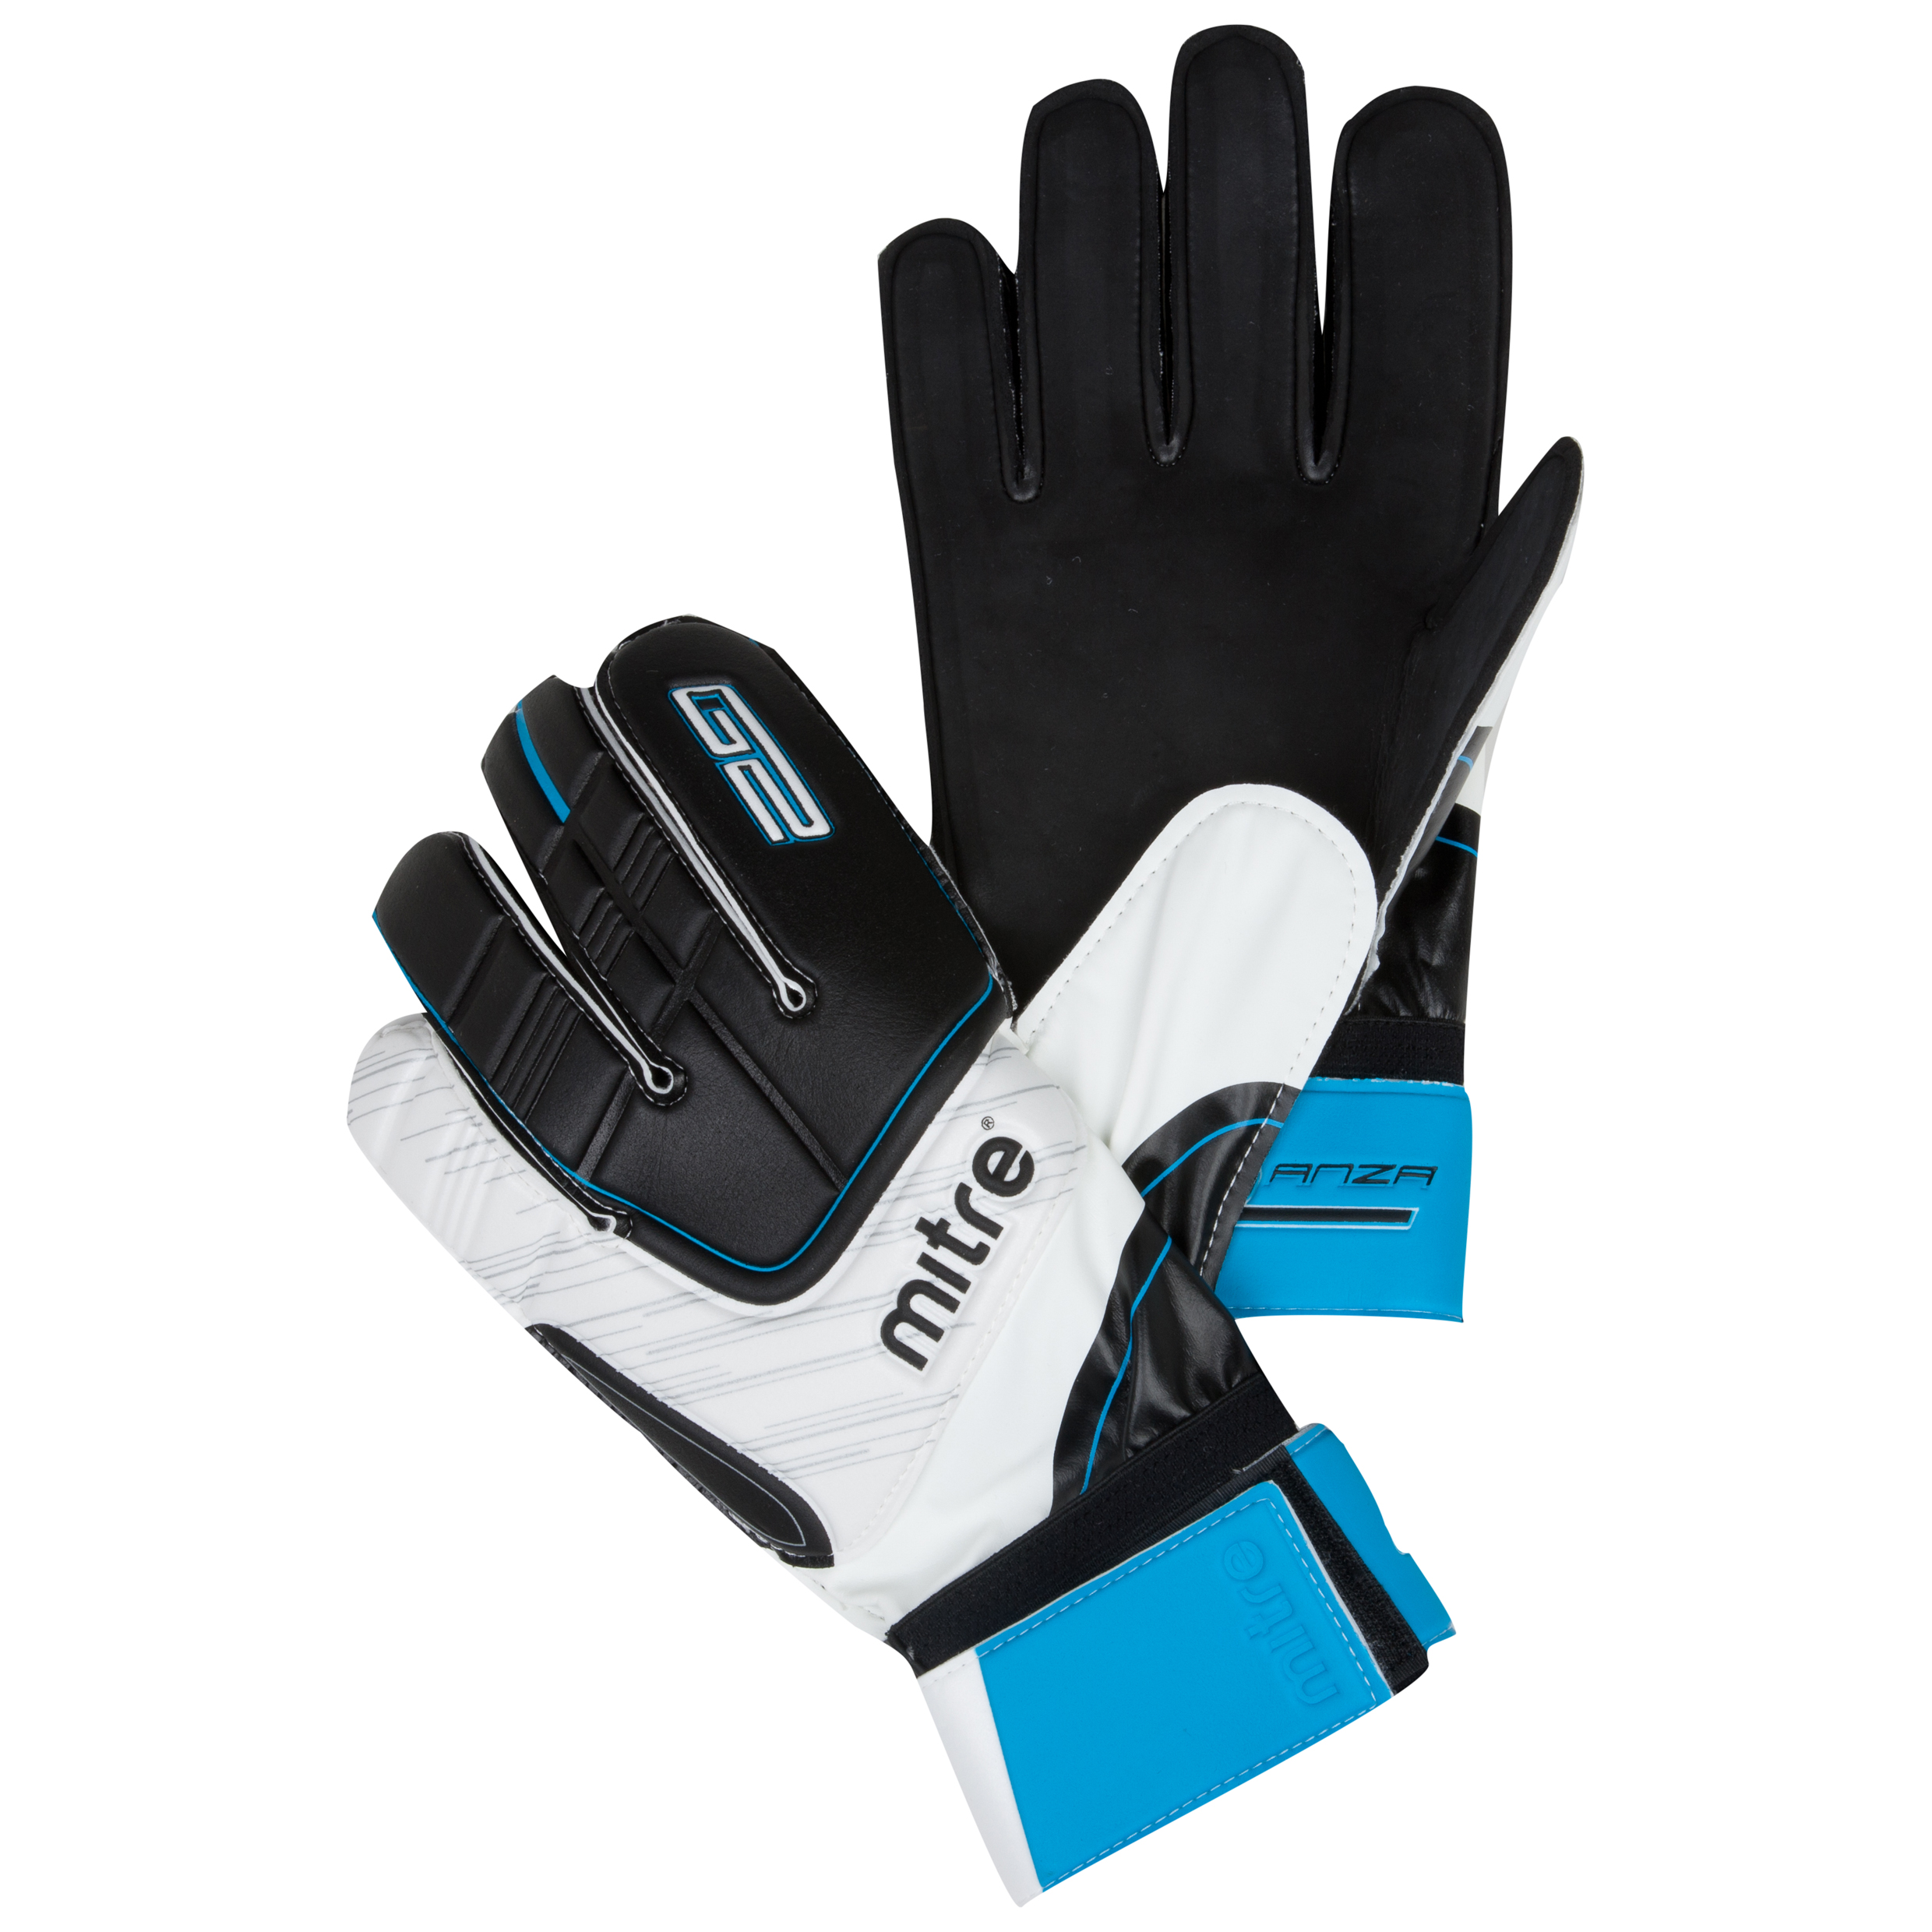 Mitre Anza G2 Flat Goalkeeper Gloves - Black/White/Cyan